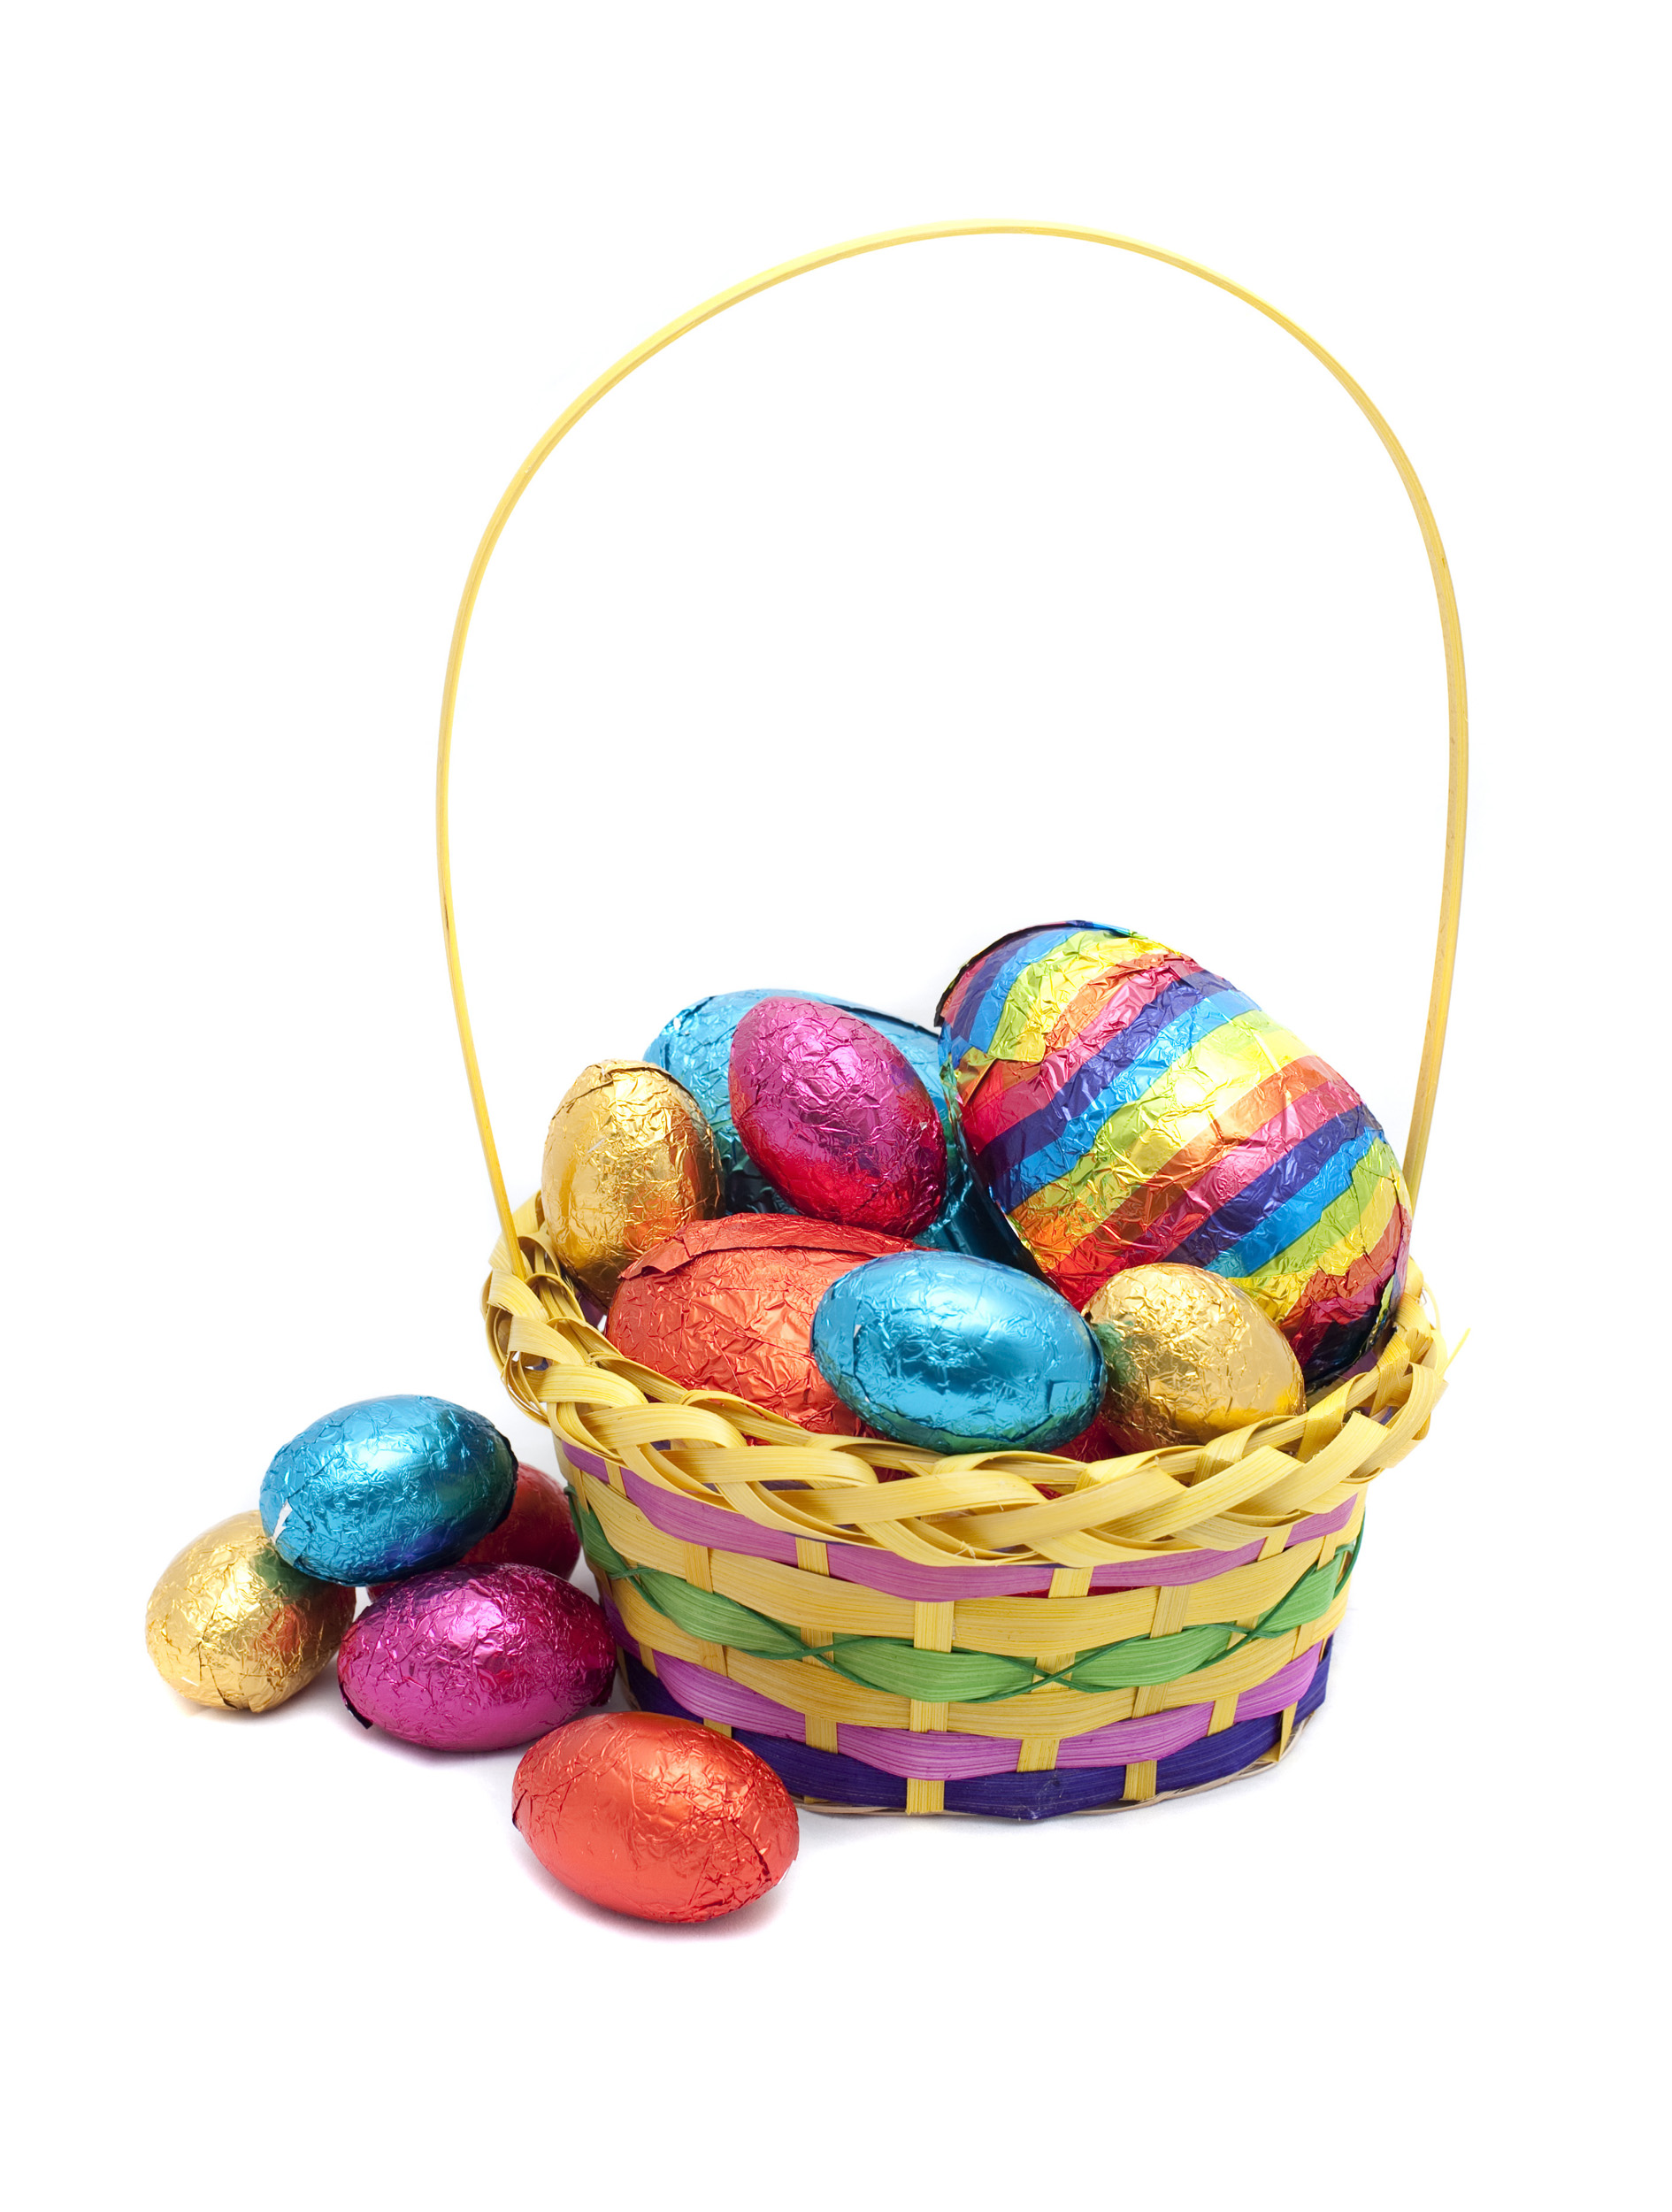 basket_of_eggs.jpg - Pretty decorative basket of colourful foil wrapped chocolate Easter Eggs on a white studio background